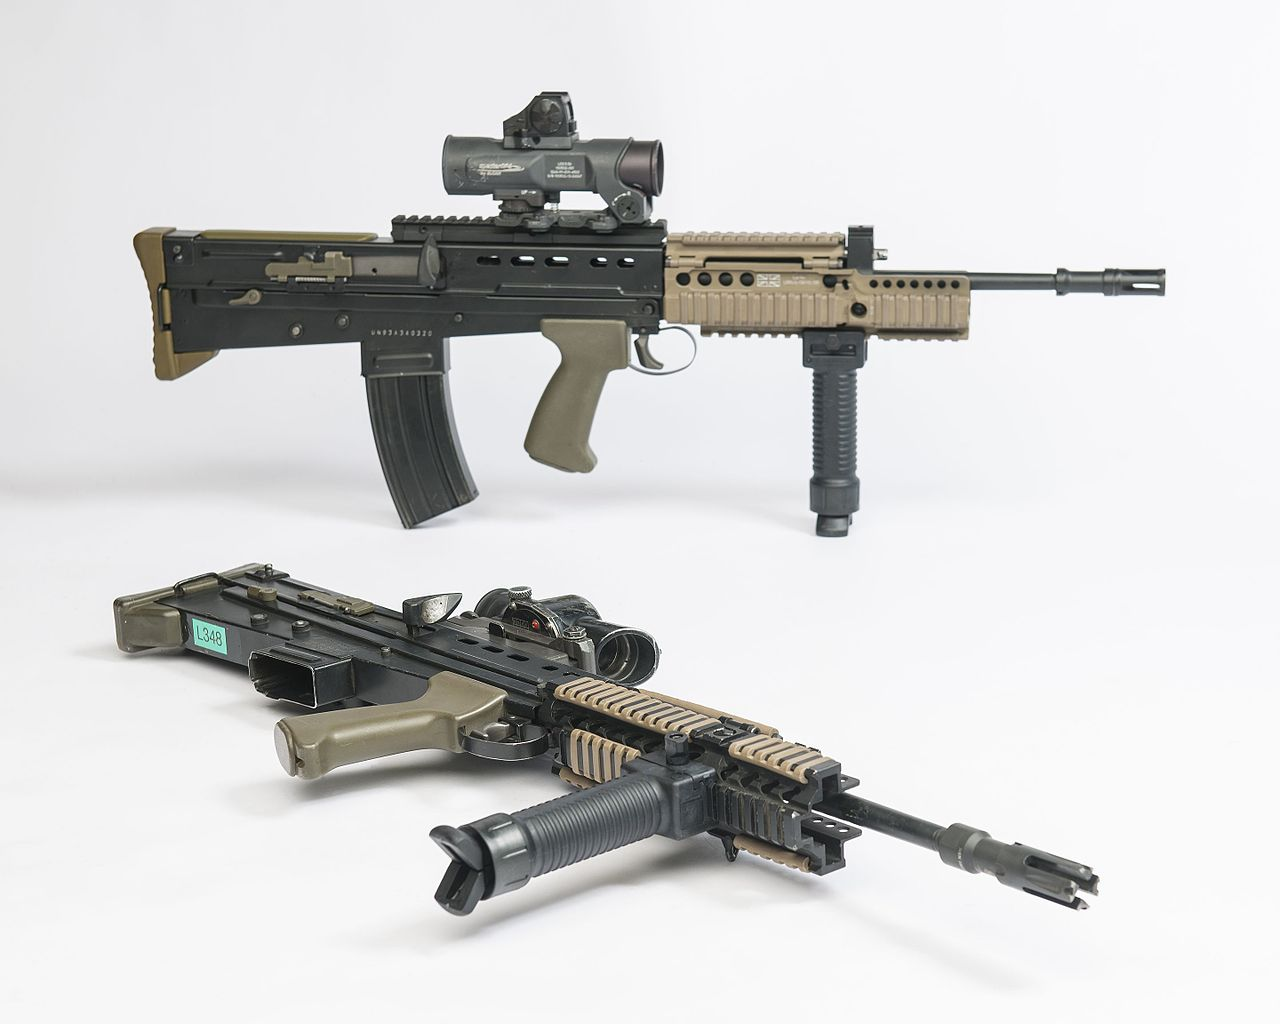 1280px-SA80_A2_(L85A2)_5.56mm_Rifle_MOD_